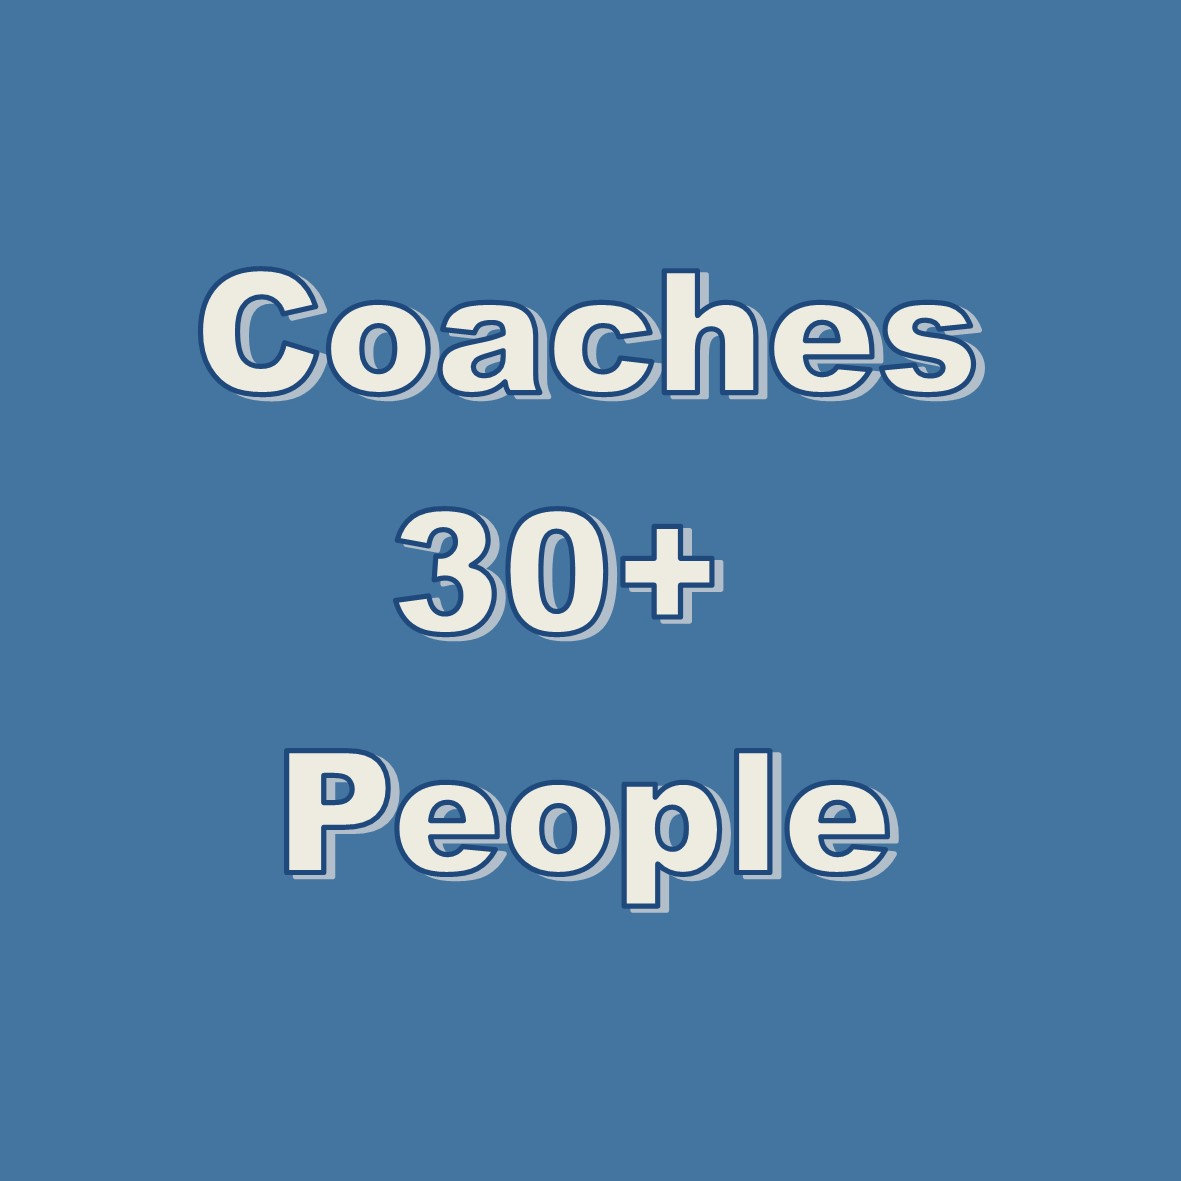 Coaches Workshop > 30 People